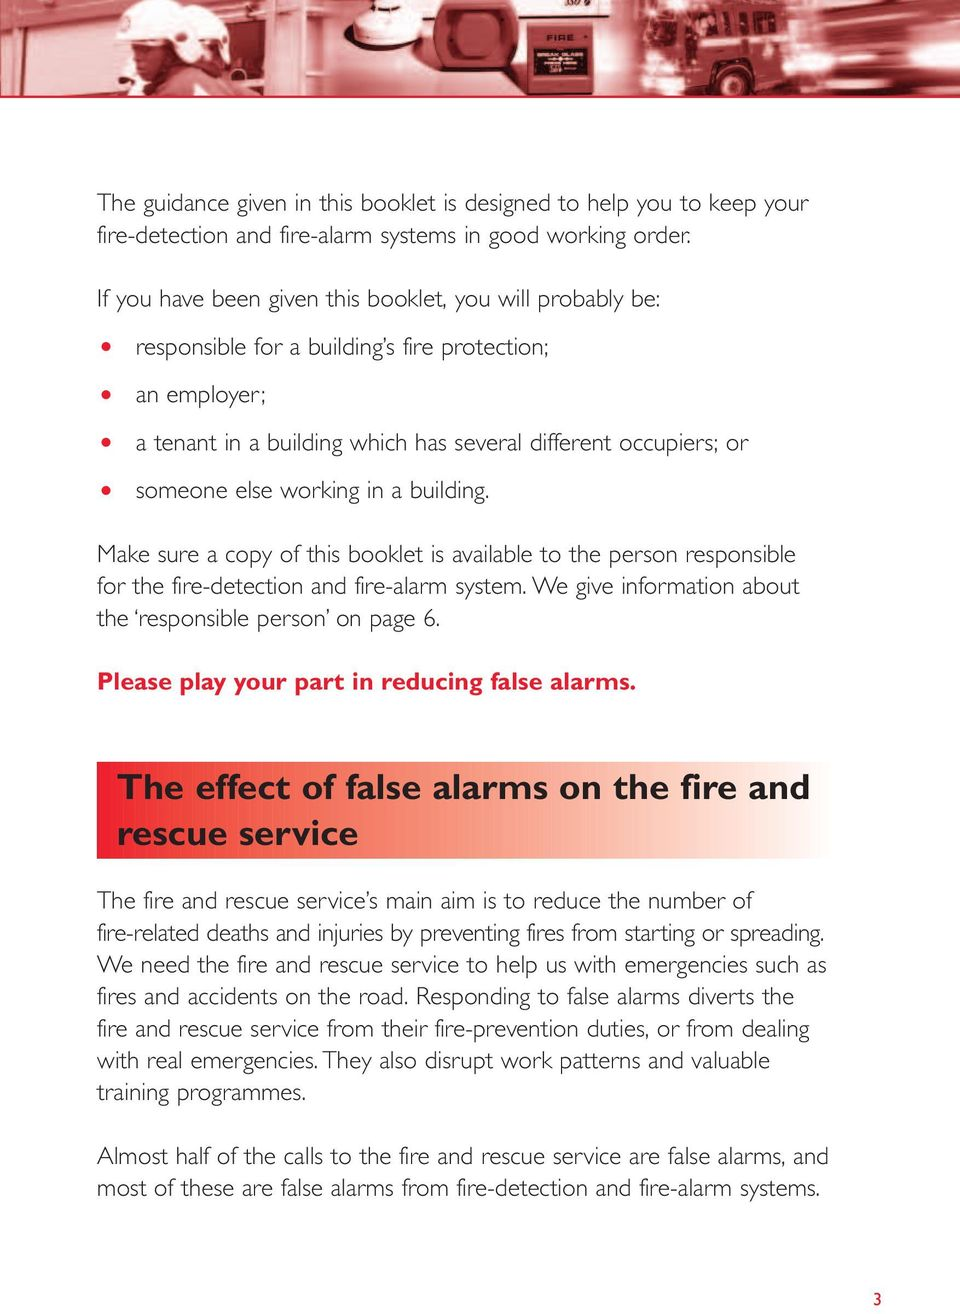 working in a building. Make sure a copy of this booklet is available to the person responsible for the fire-detection and fire-alarm system. We give information about the responsible person on page 6.